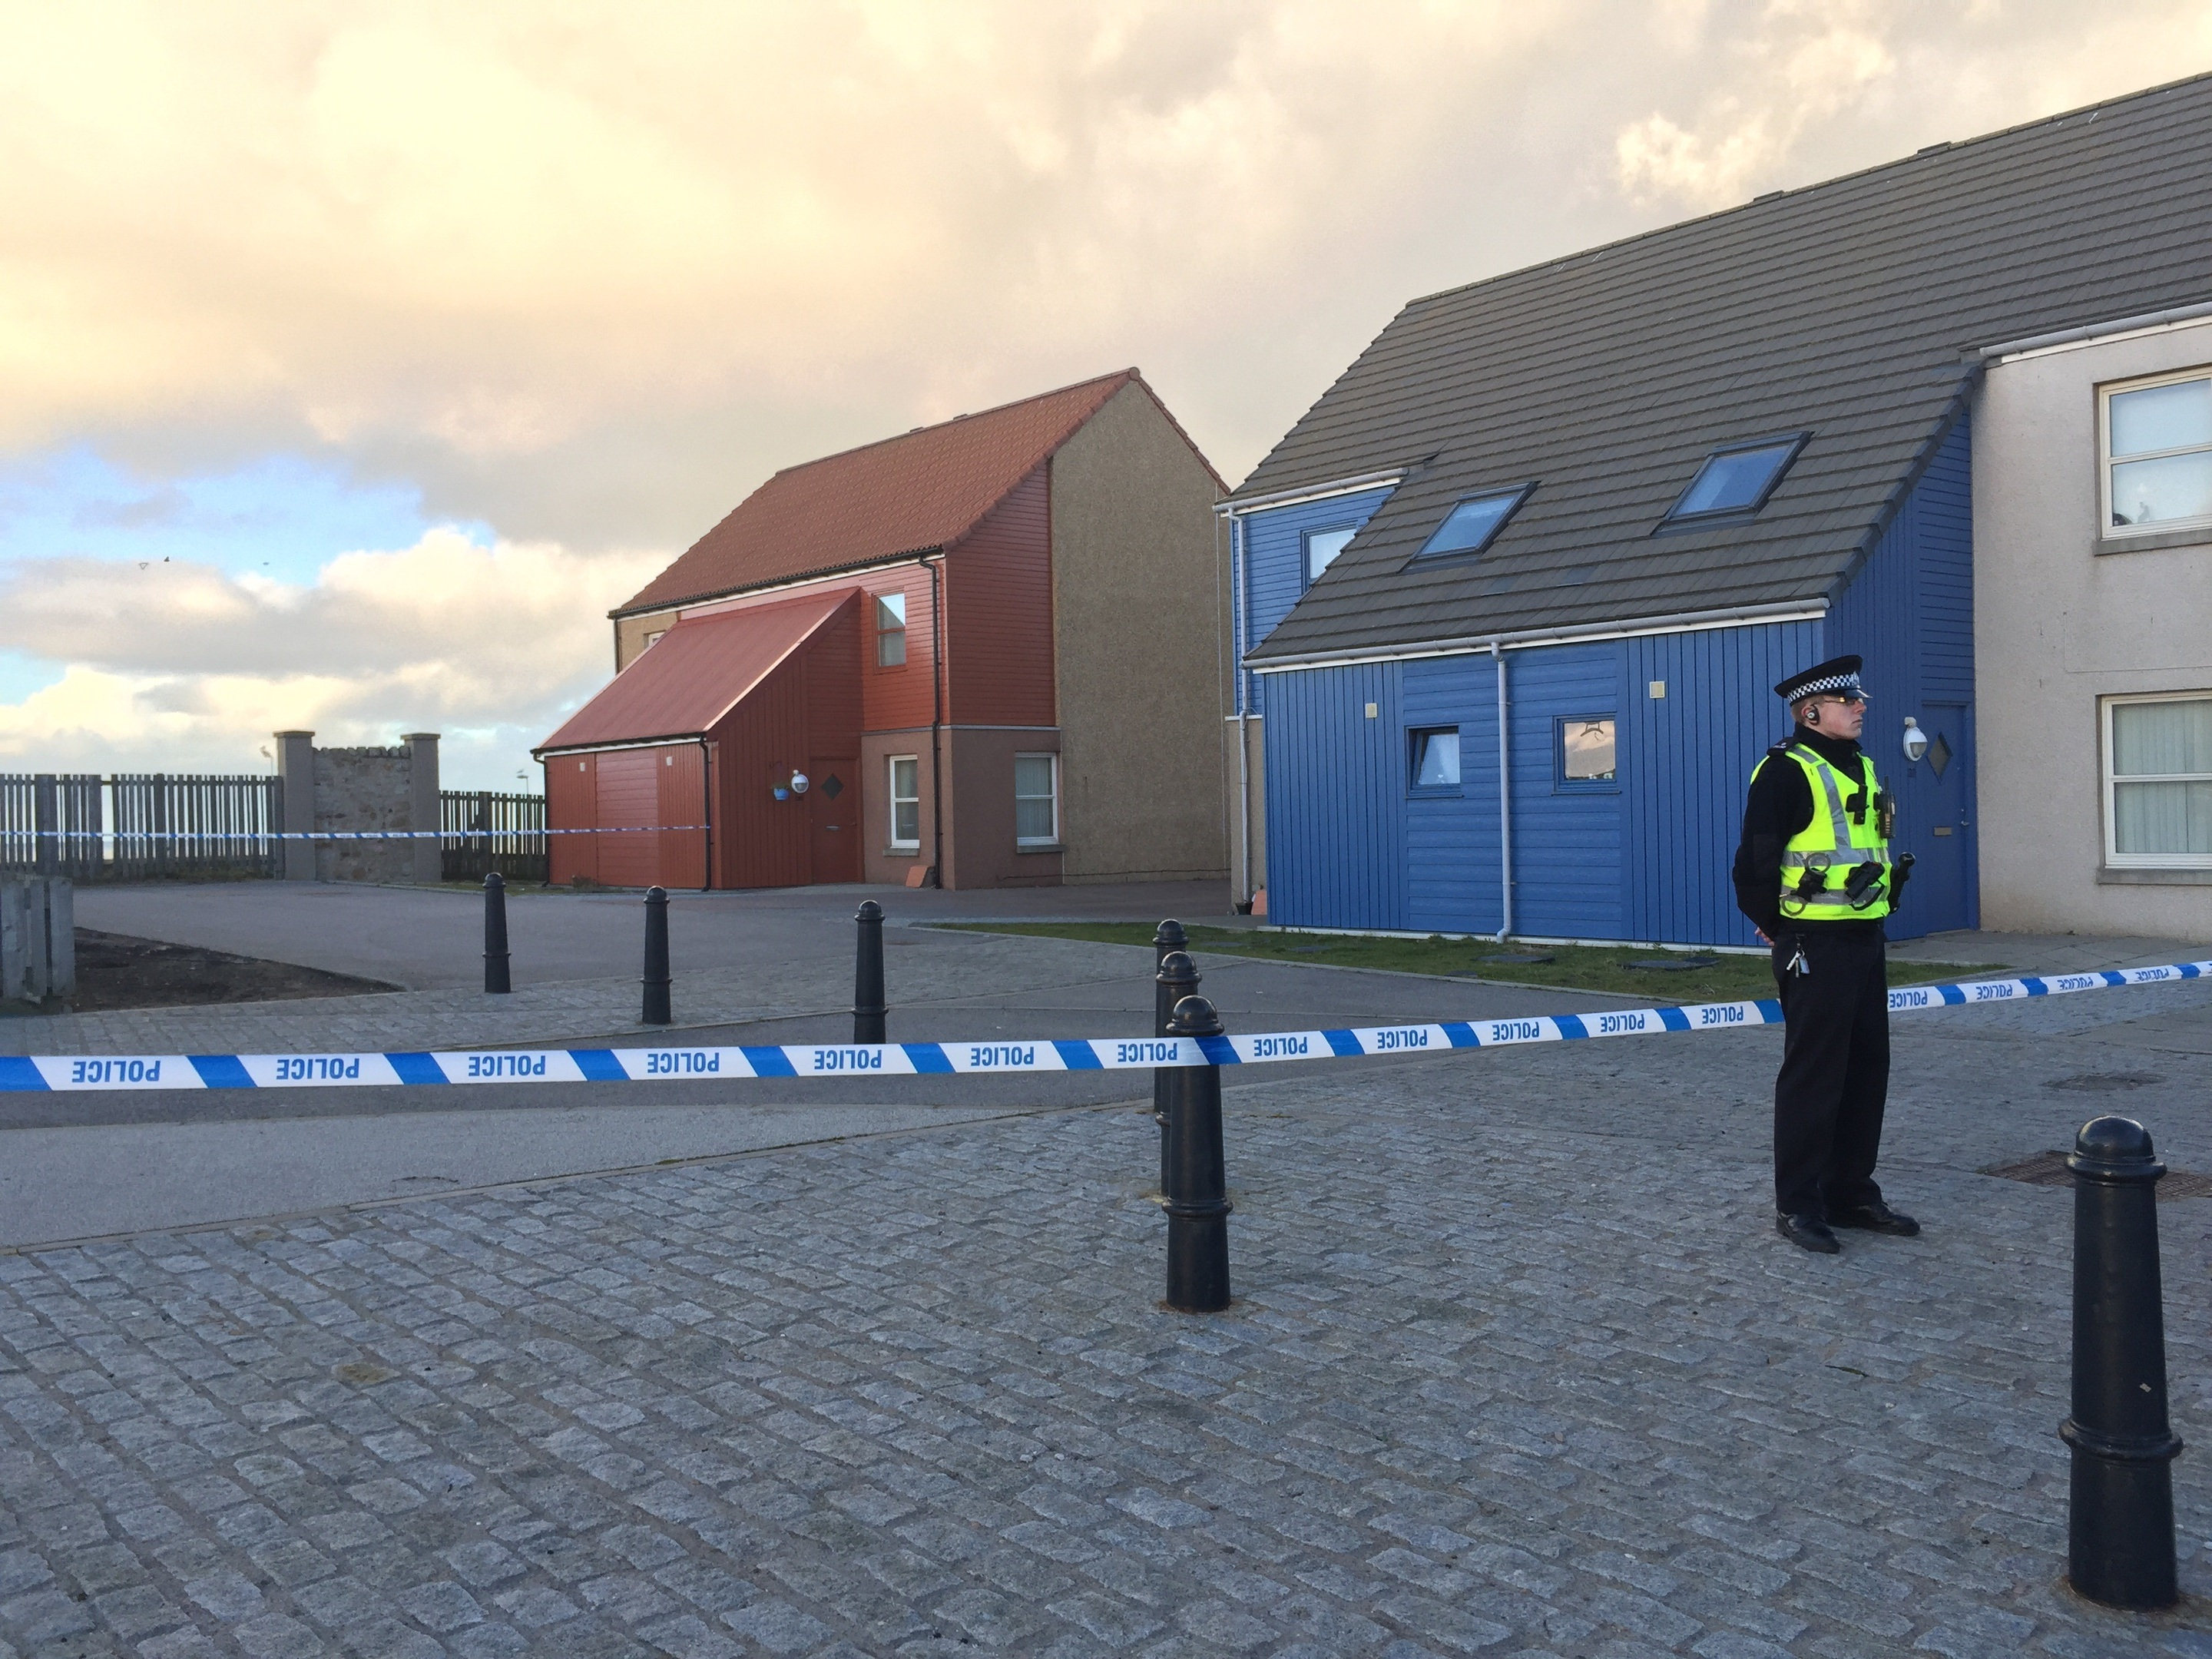 An investigation is under way after a man's body was discovered in a Fraserburgh property